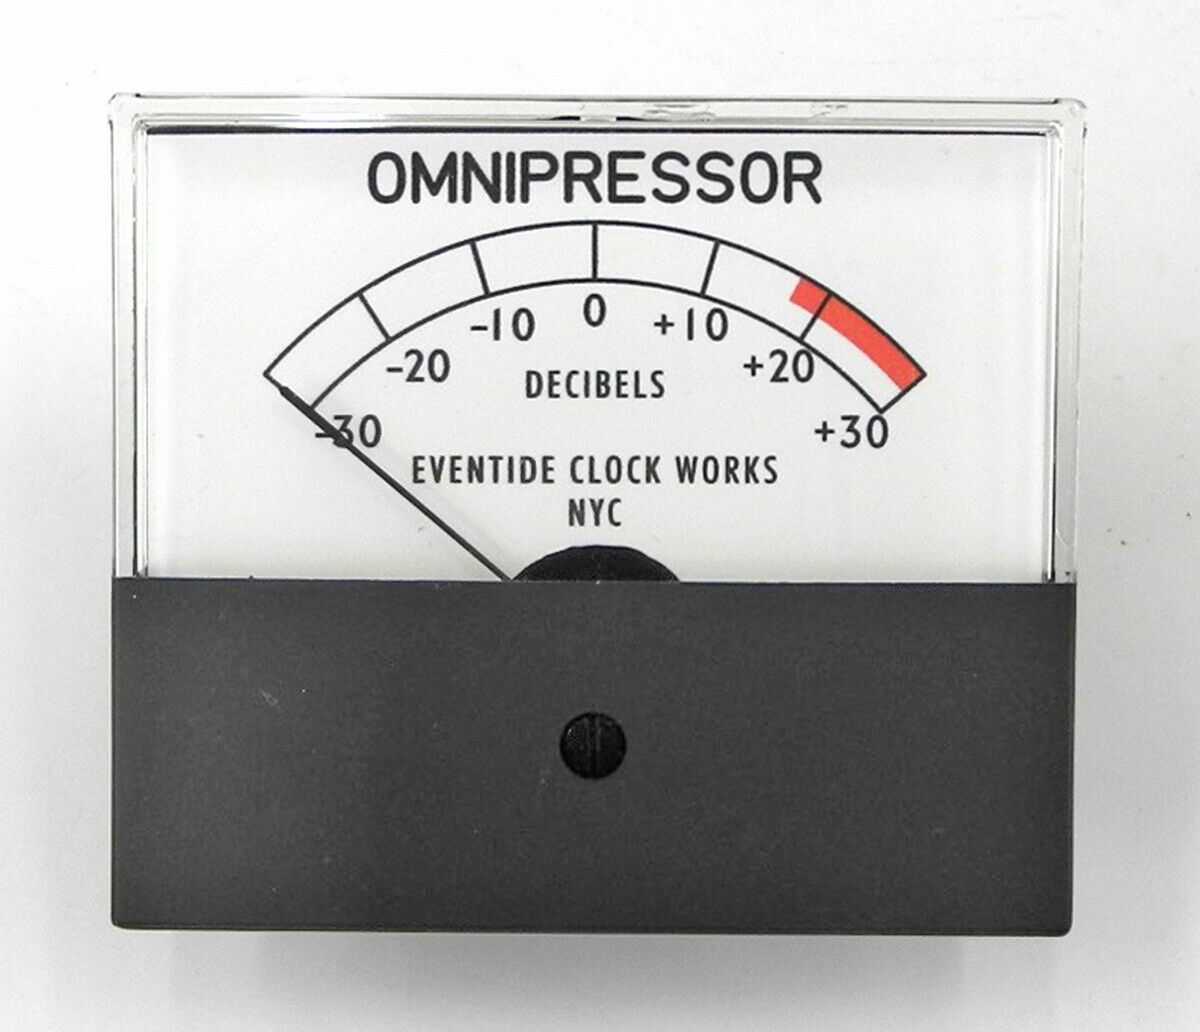 New Substitute Meter For Eventide 2826 And 2830 Omnipressor (Mods Needed). EO